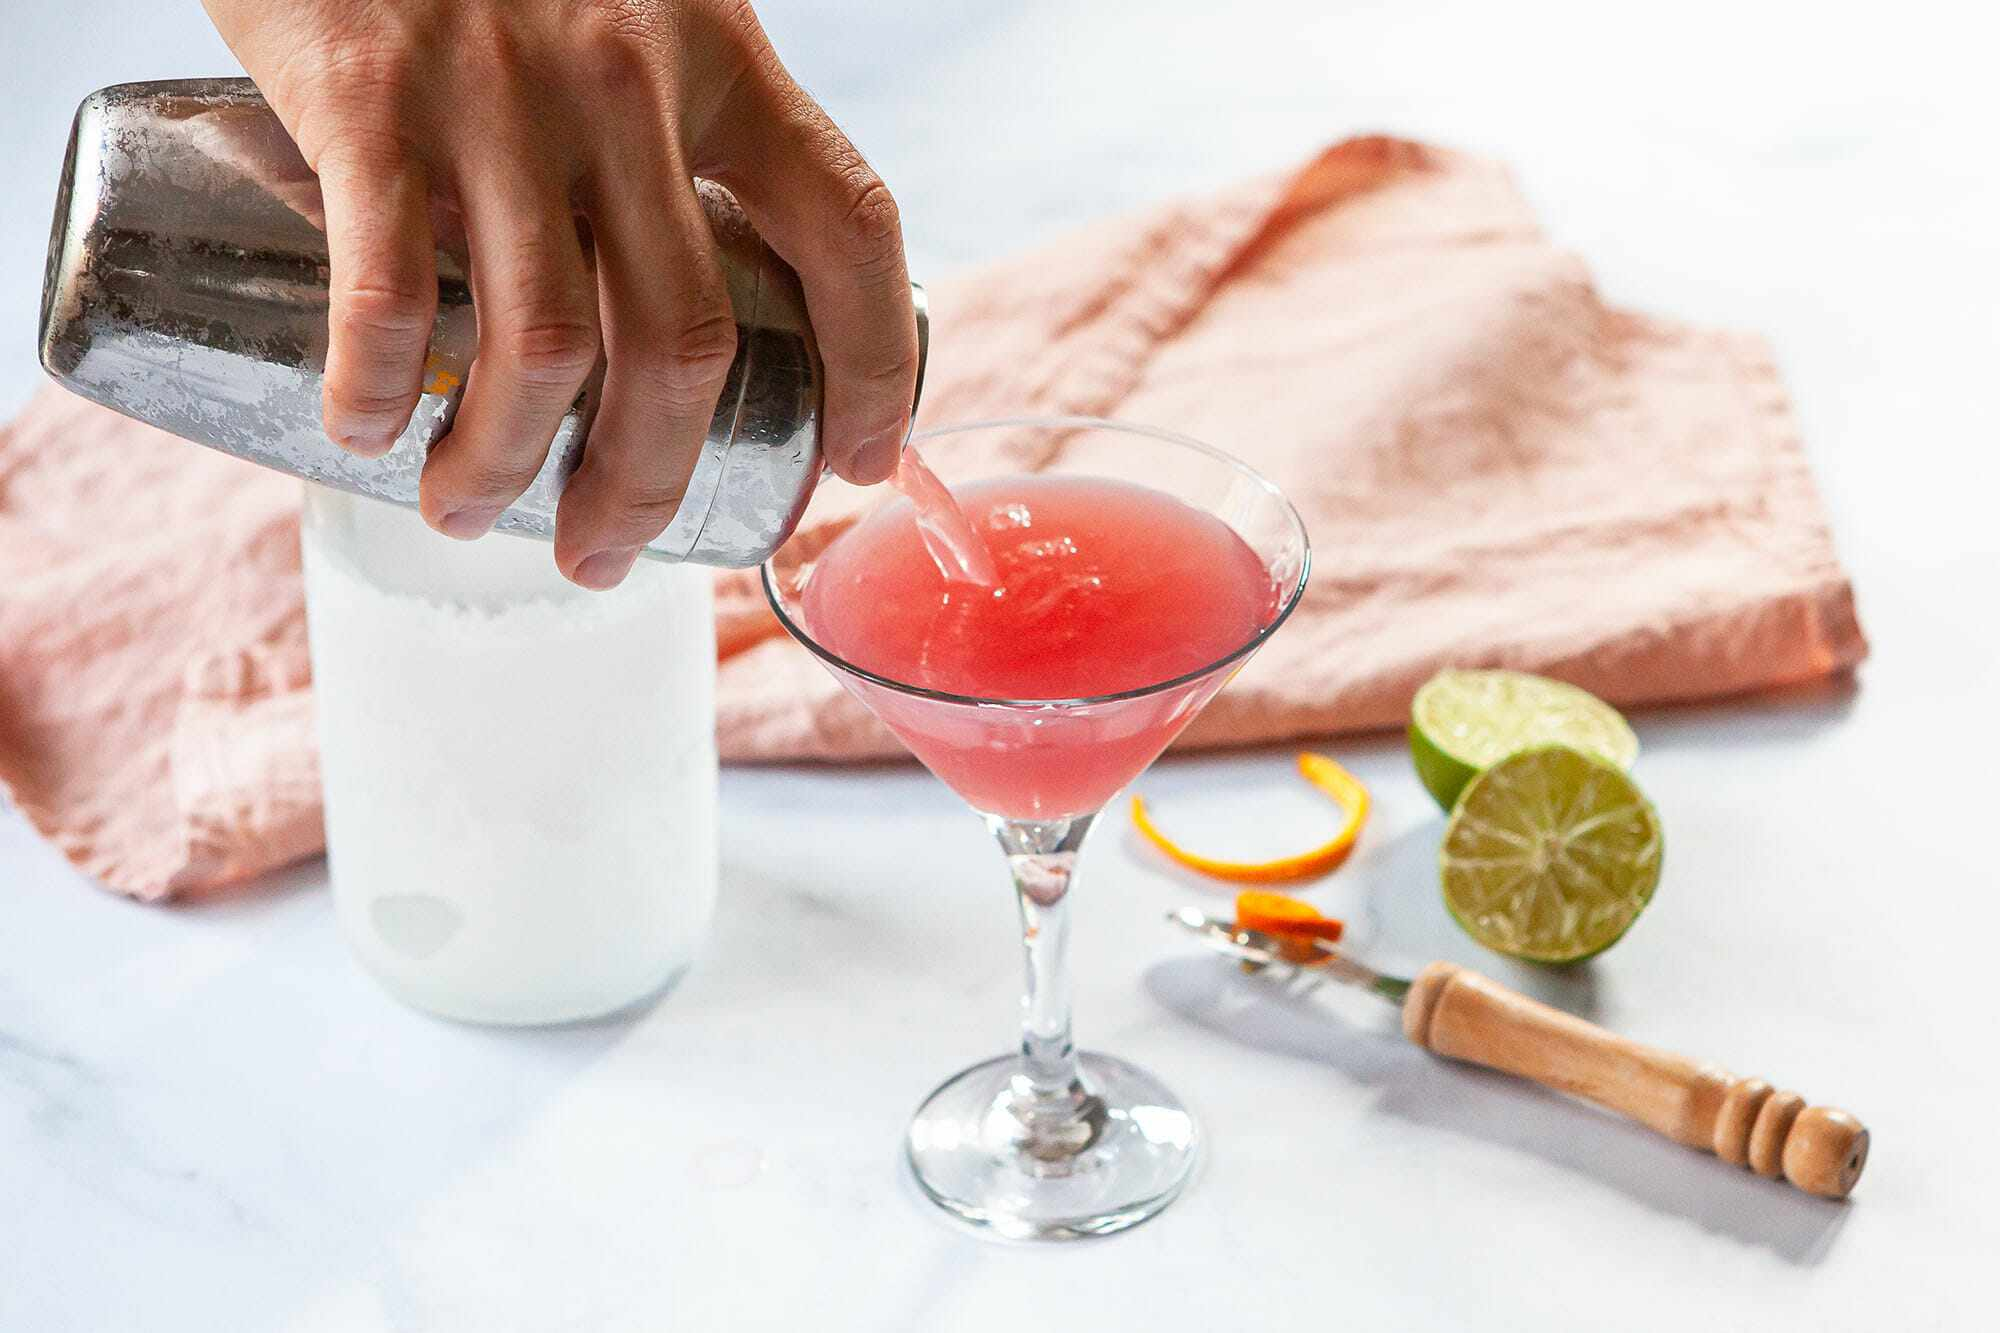 A cosmo recipe being made and poured into a martini glass.